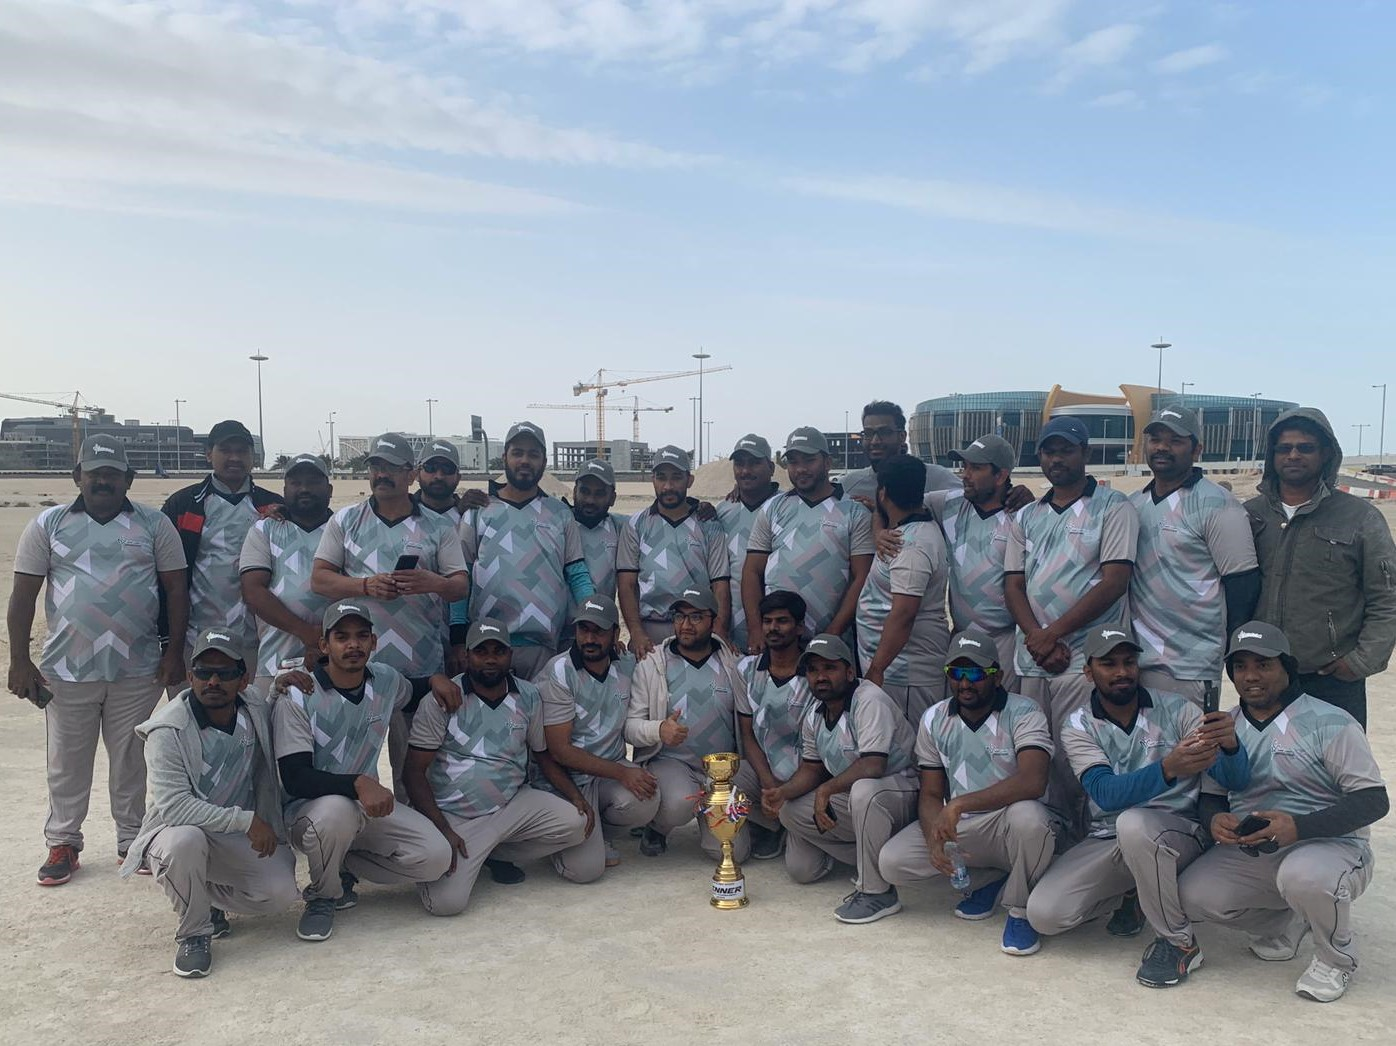 Qatari Investors Group celebrates Qatar National Sports Day with employees and partners